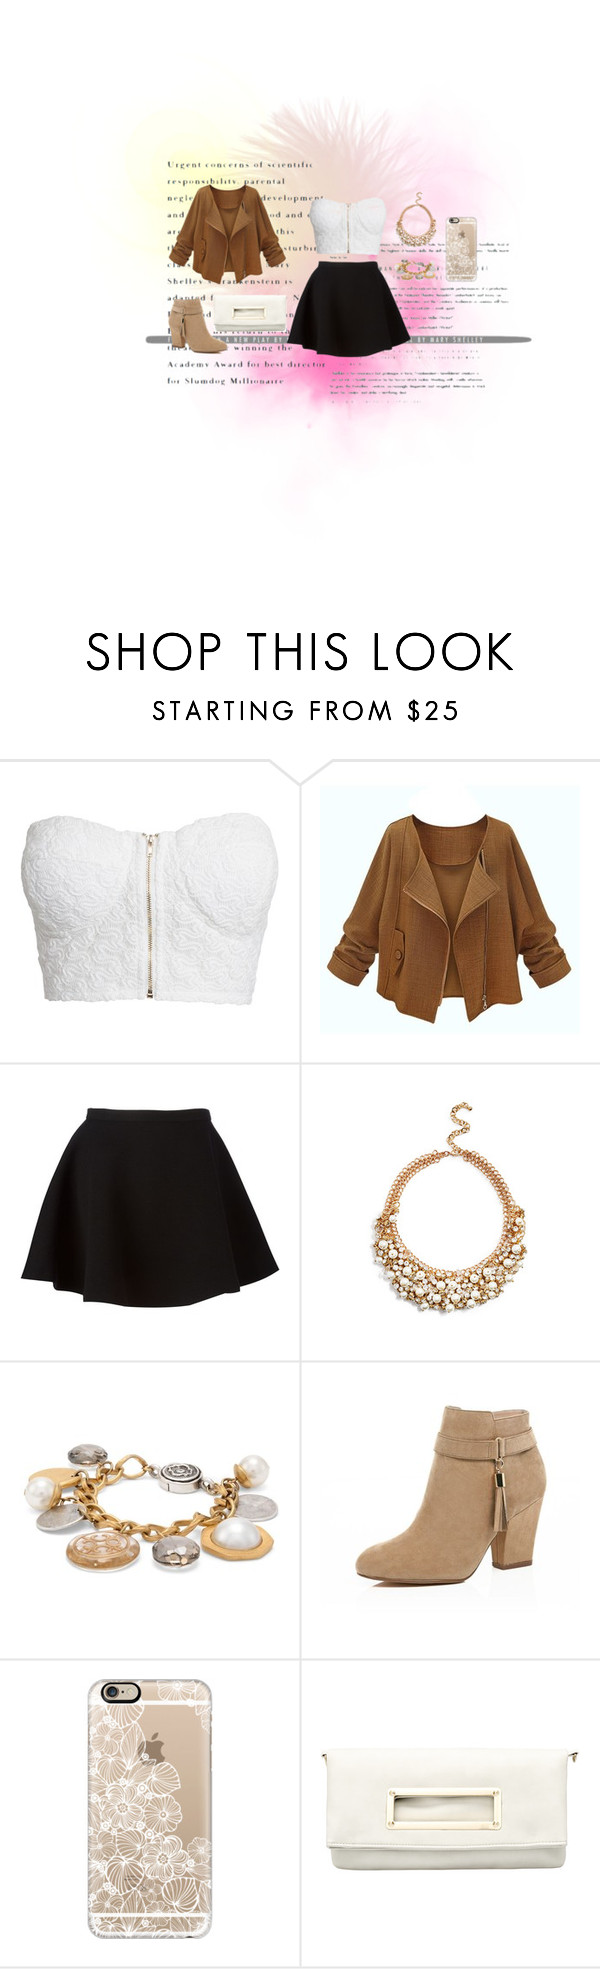 """""""#19"""" by verasilvestro ❤ liked on Polyvore featuring NLY Trend, Neil Barrett, GUESS, Chico's, River Island, Casetify, women's clothing, women, female and woman"""